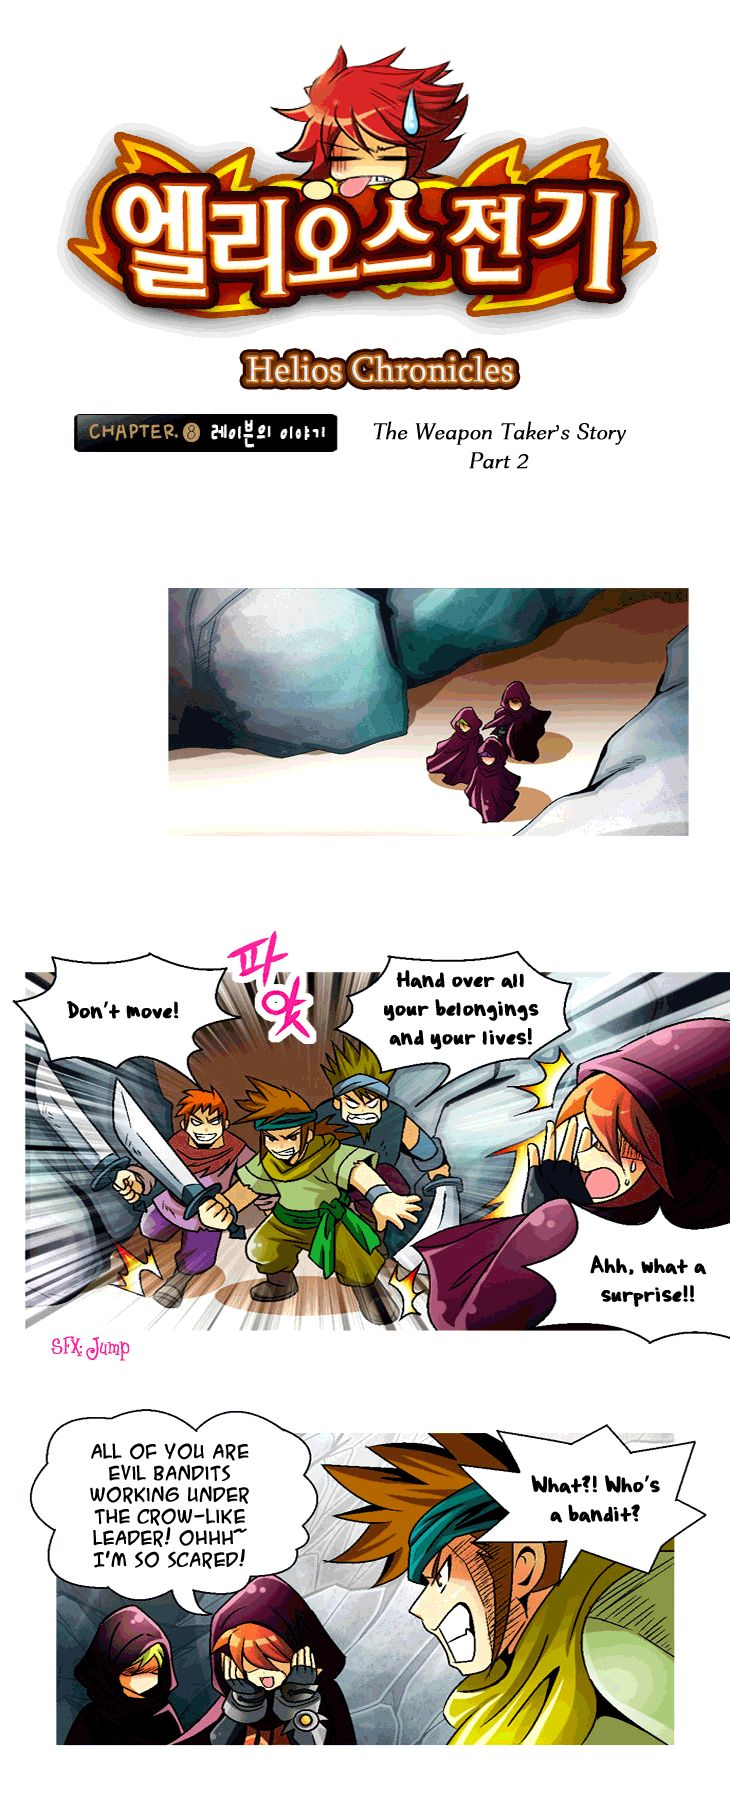 Helios Chronicles 8 Page 2